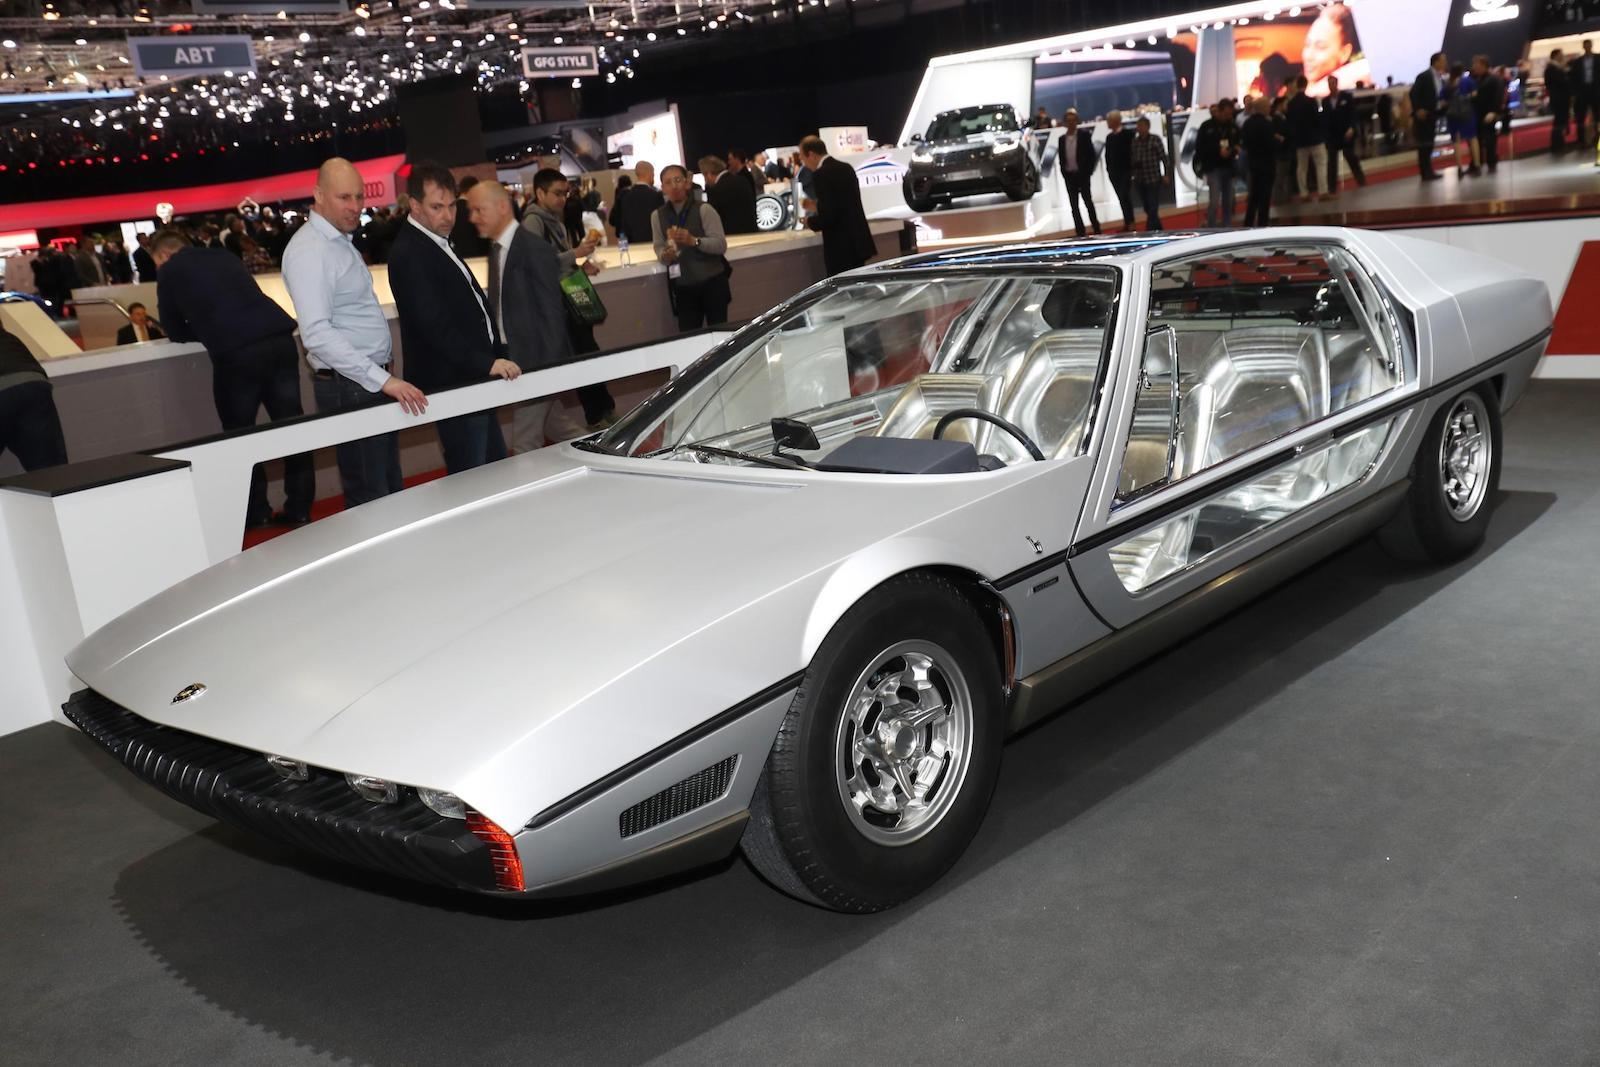 Top 10 classic cars at the 2018 Geneva Motor Show | Autoclassics.com